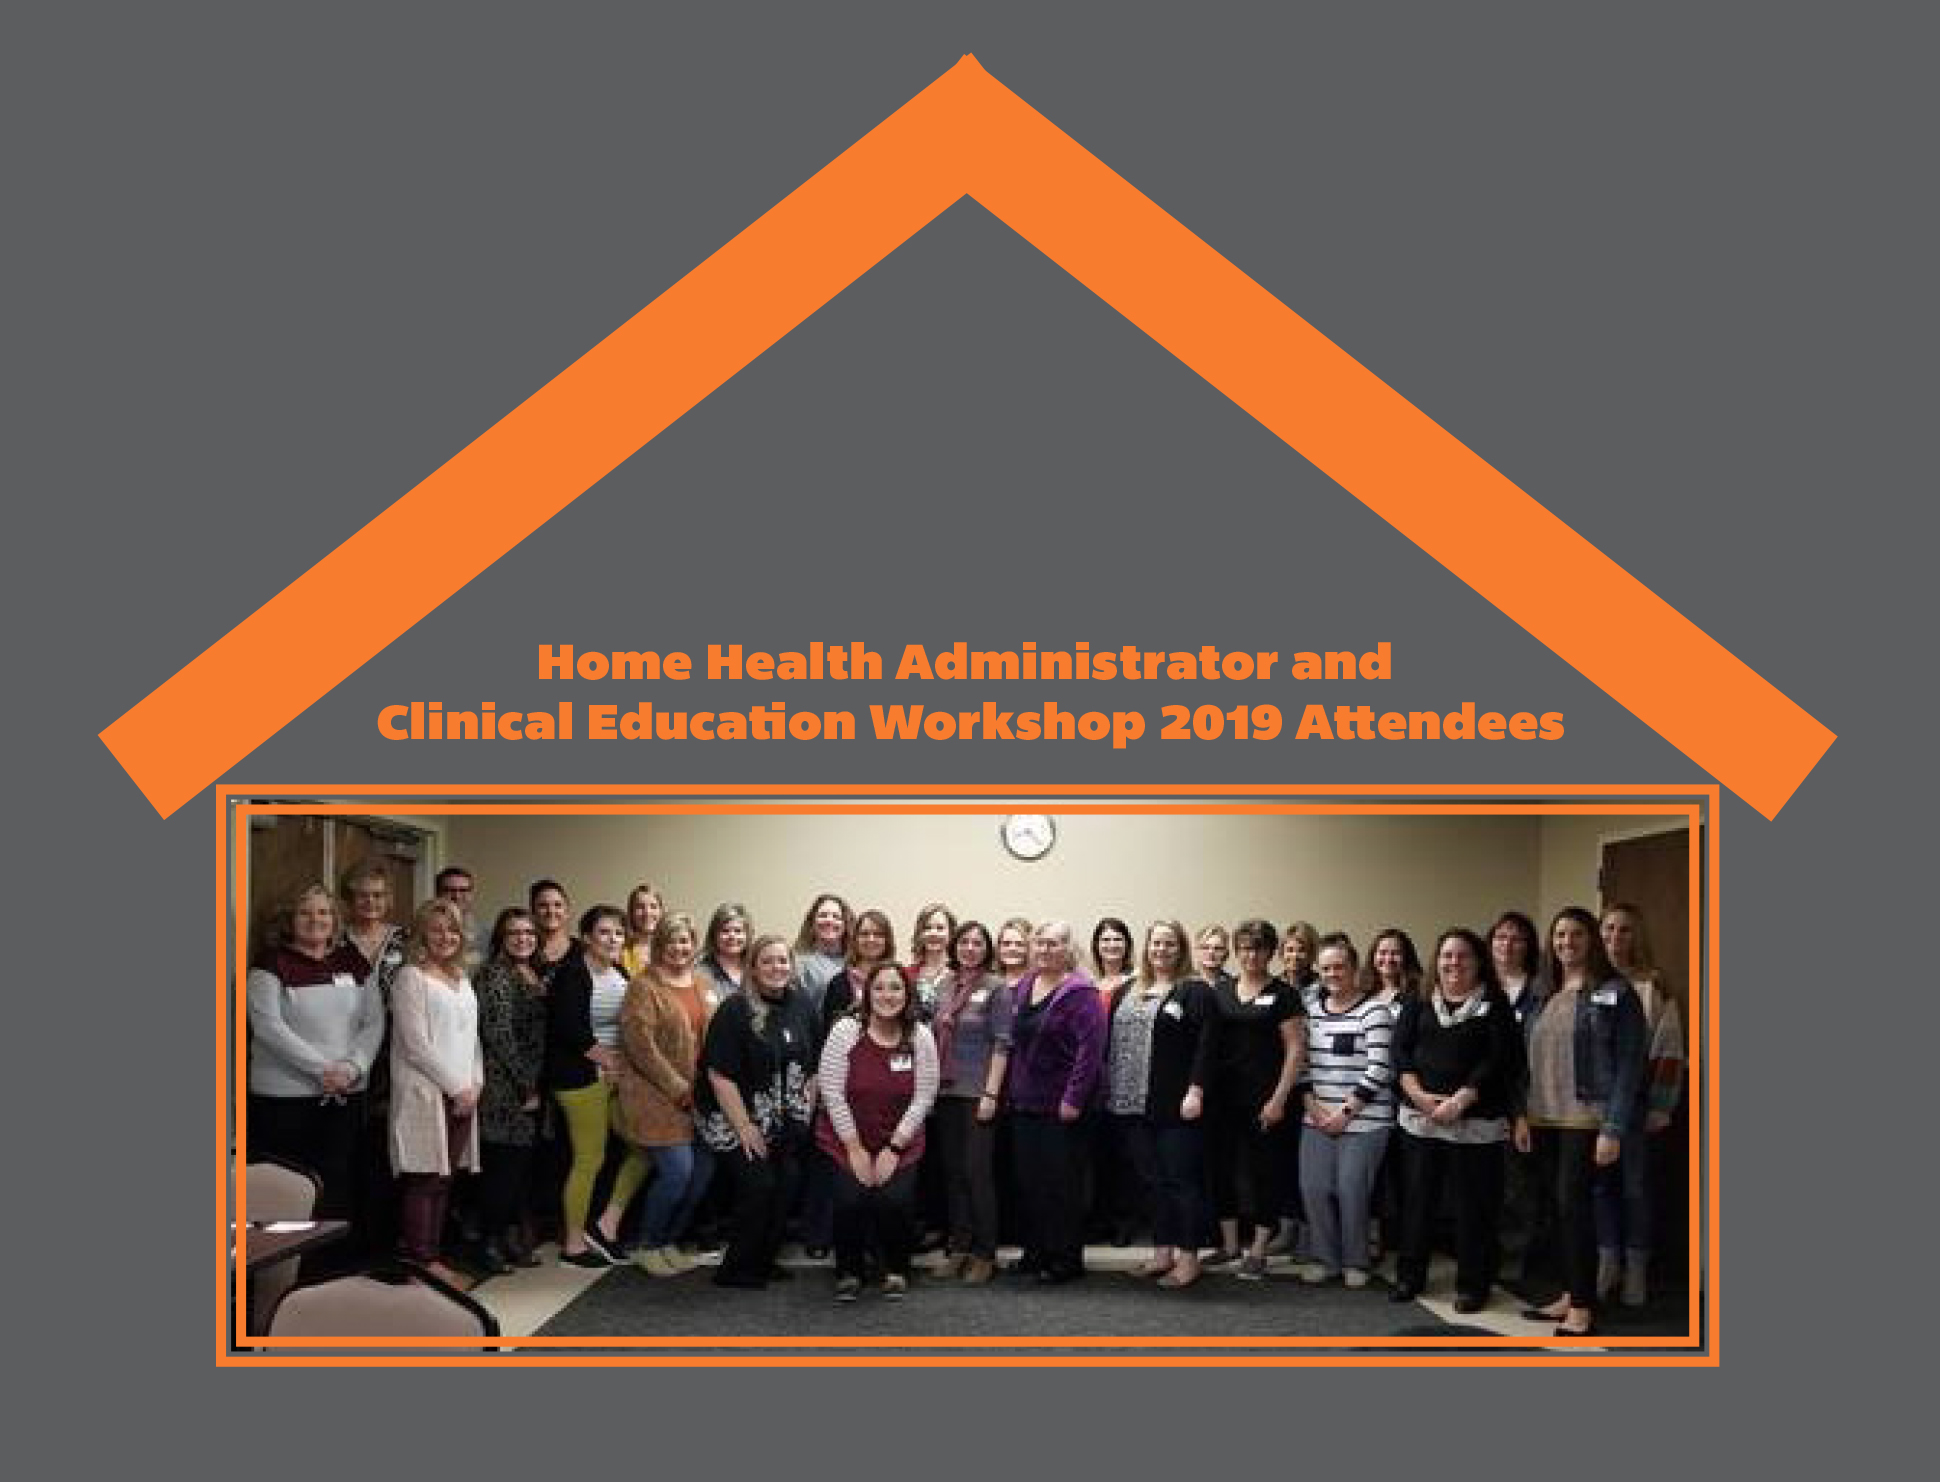 Home Health Administrator and Clinical Education Workshop